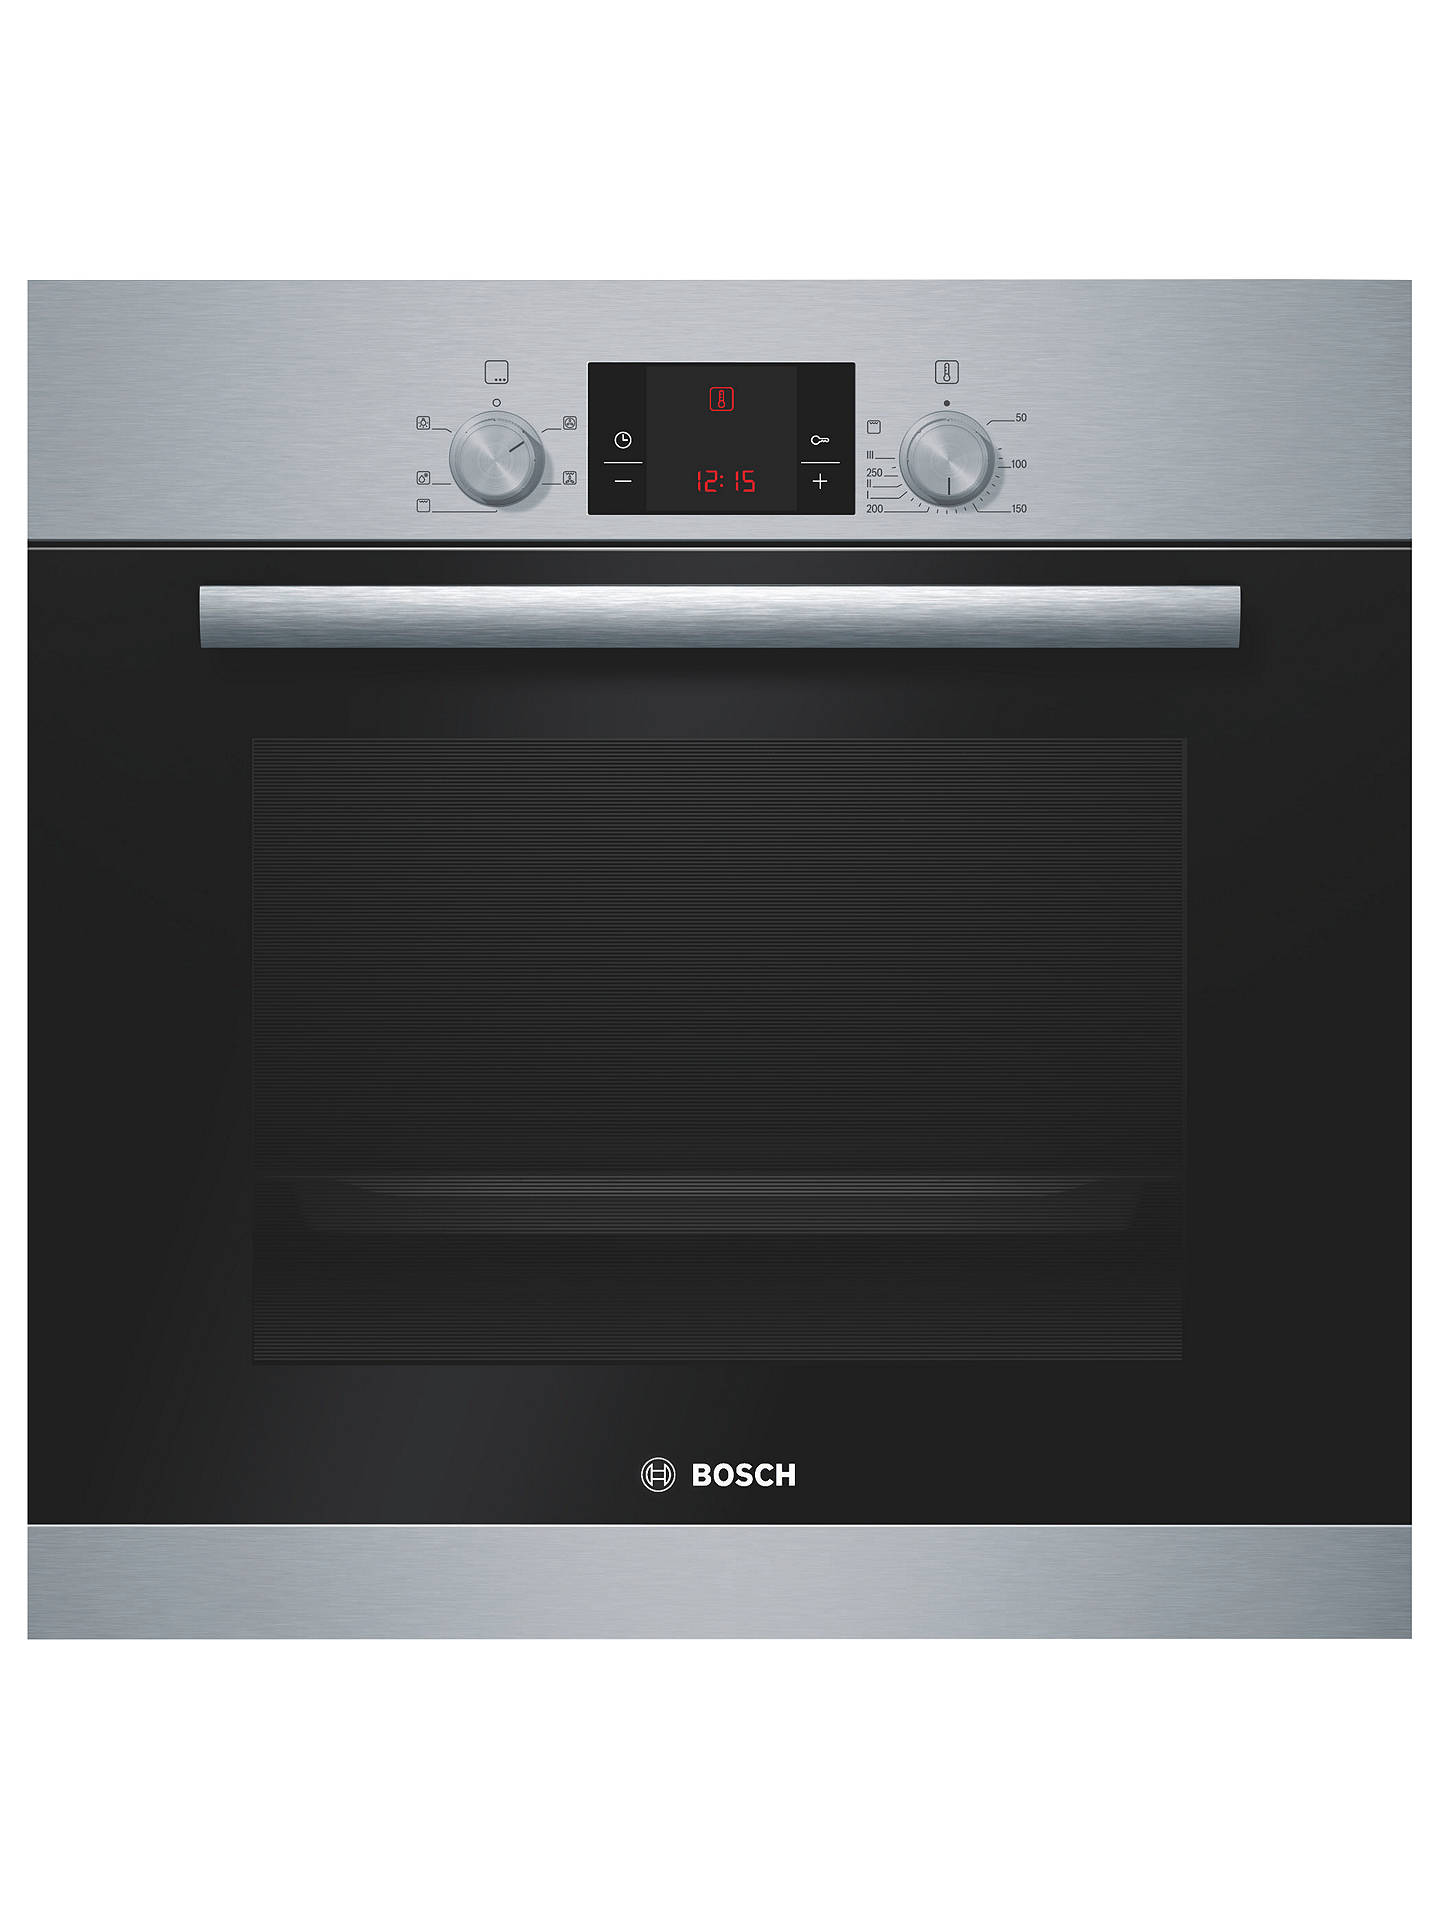 Bosch Oven Manual Uk User Guide Manual That Easy To Read